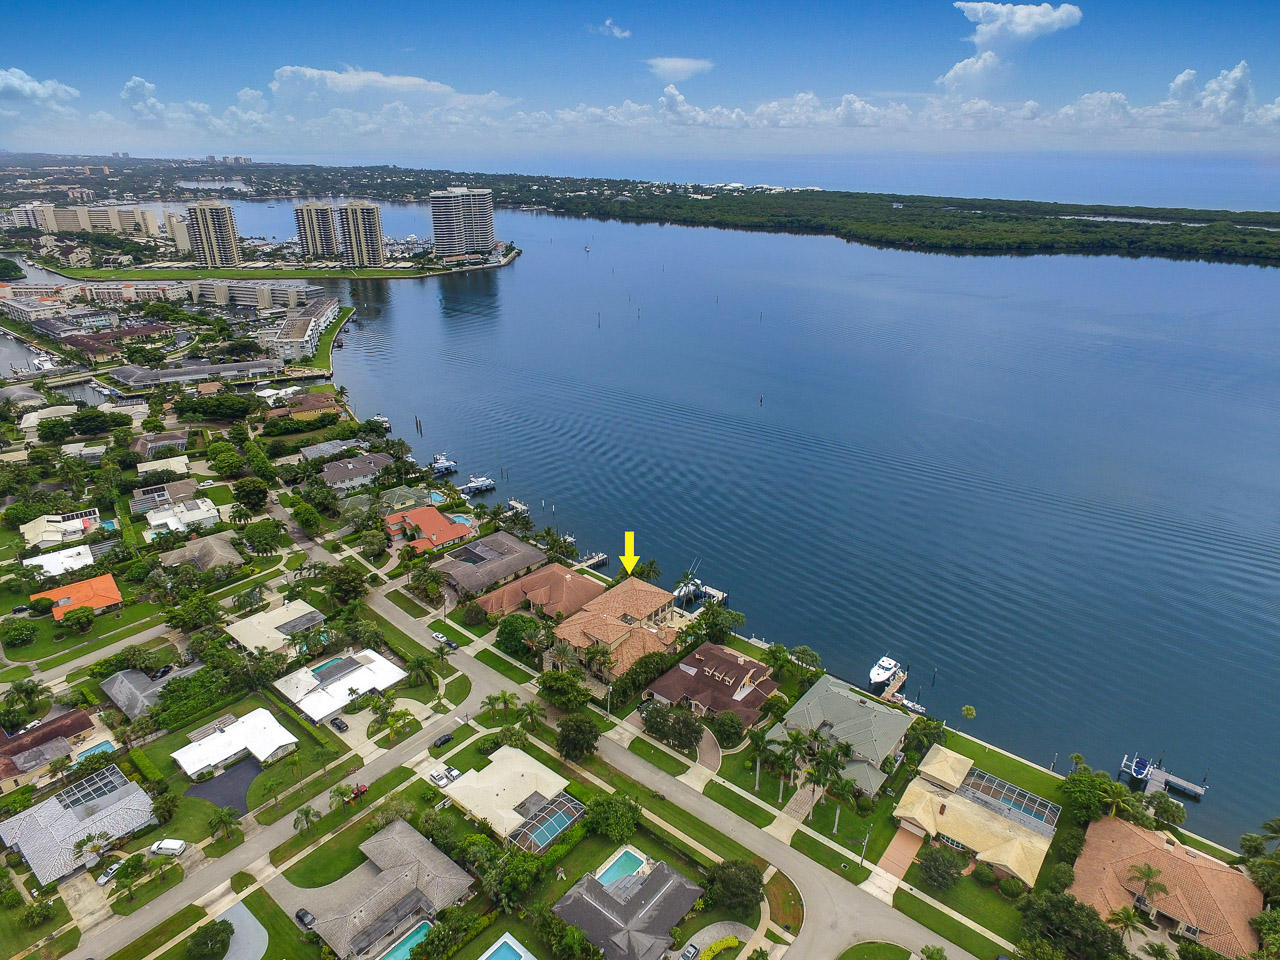 New Home for sale at 830 Lakeside Drive in North Palm Beach